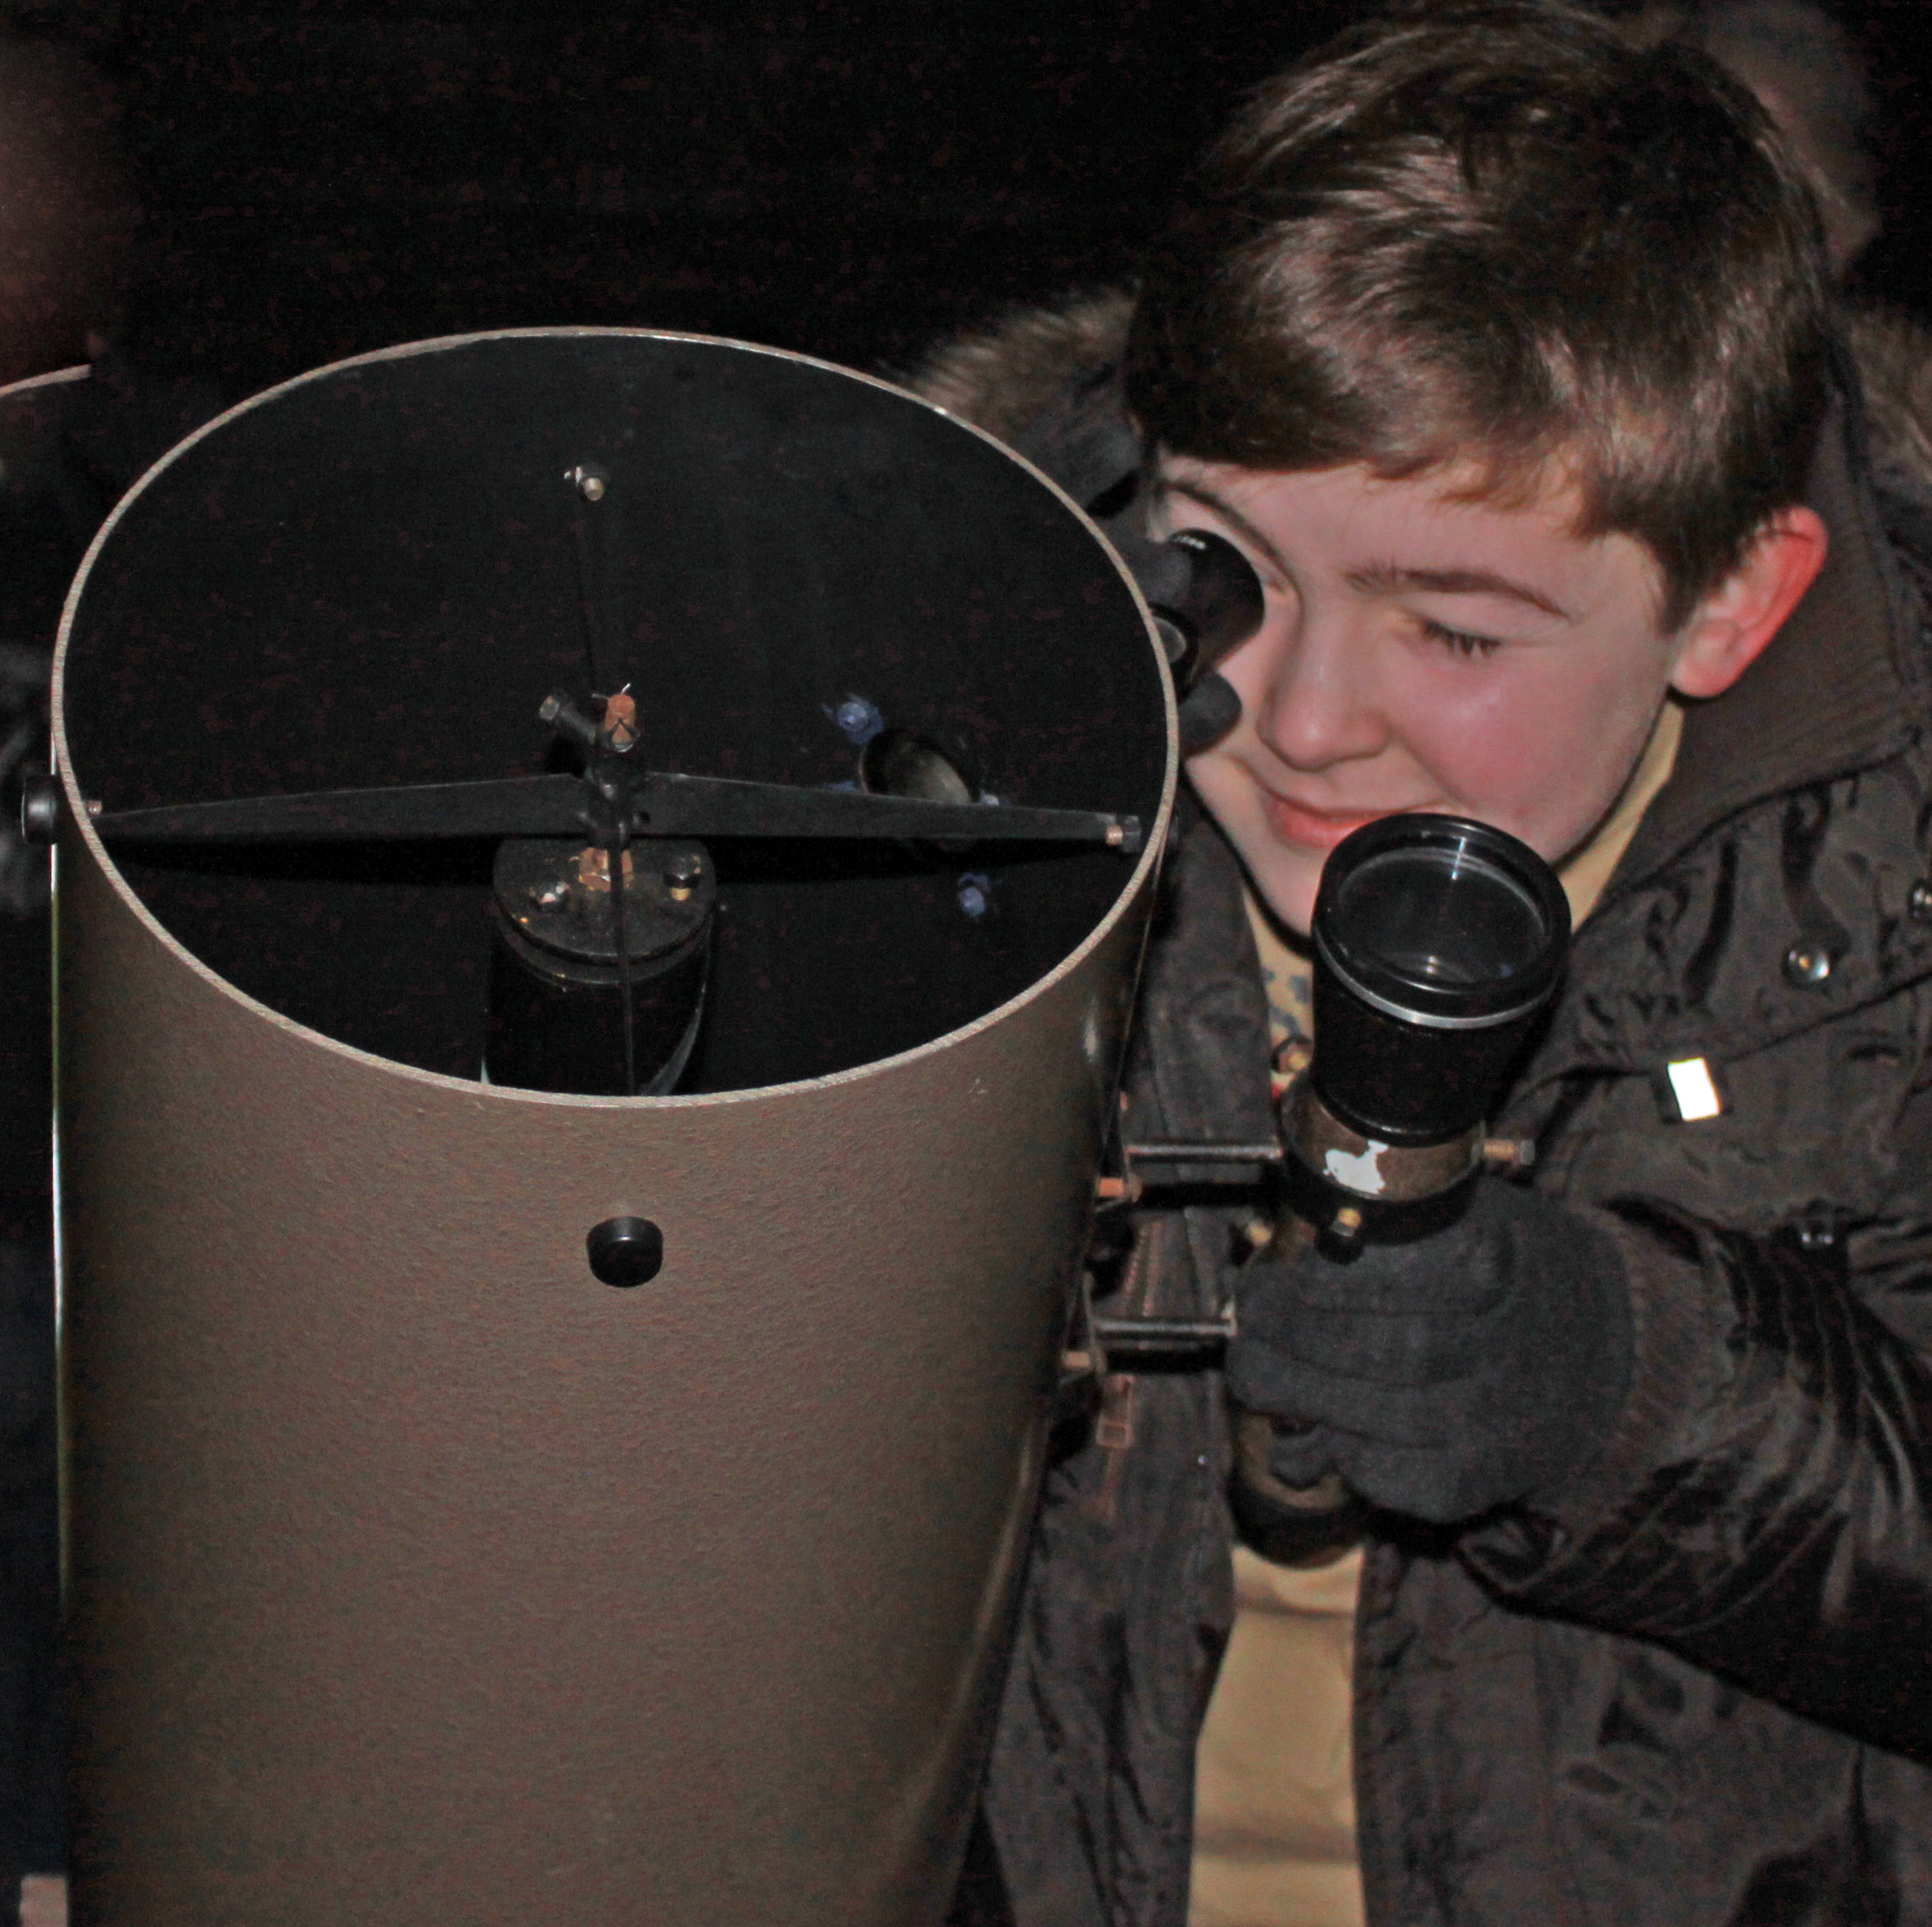 A Young Astronomer looks at the night sky through a telescope